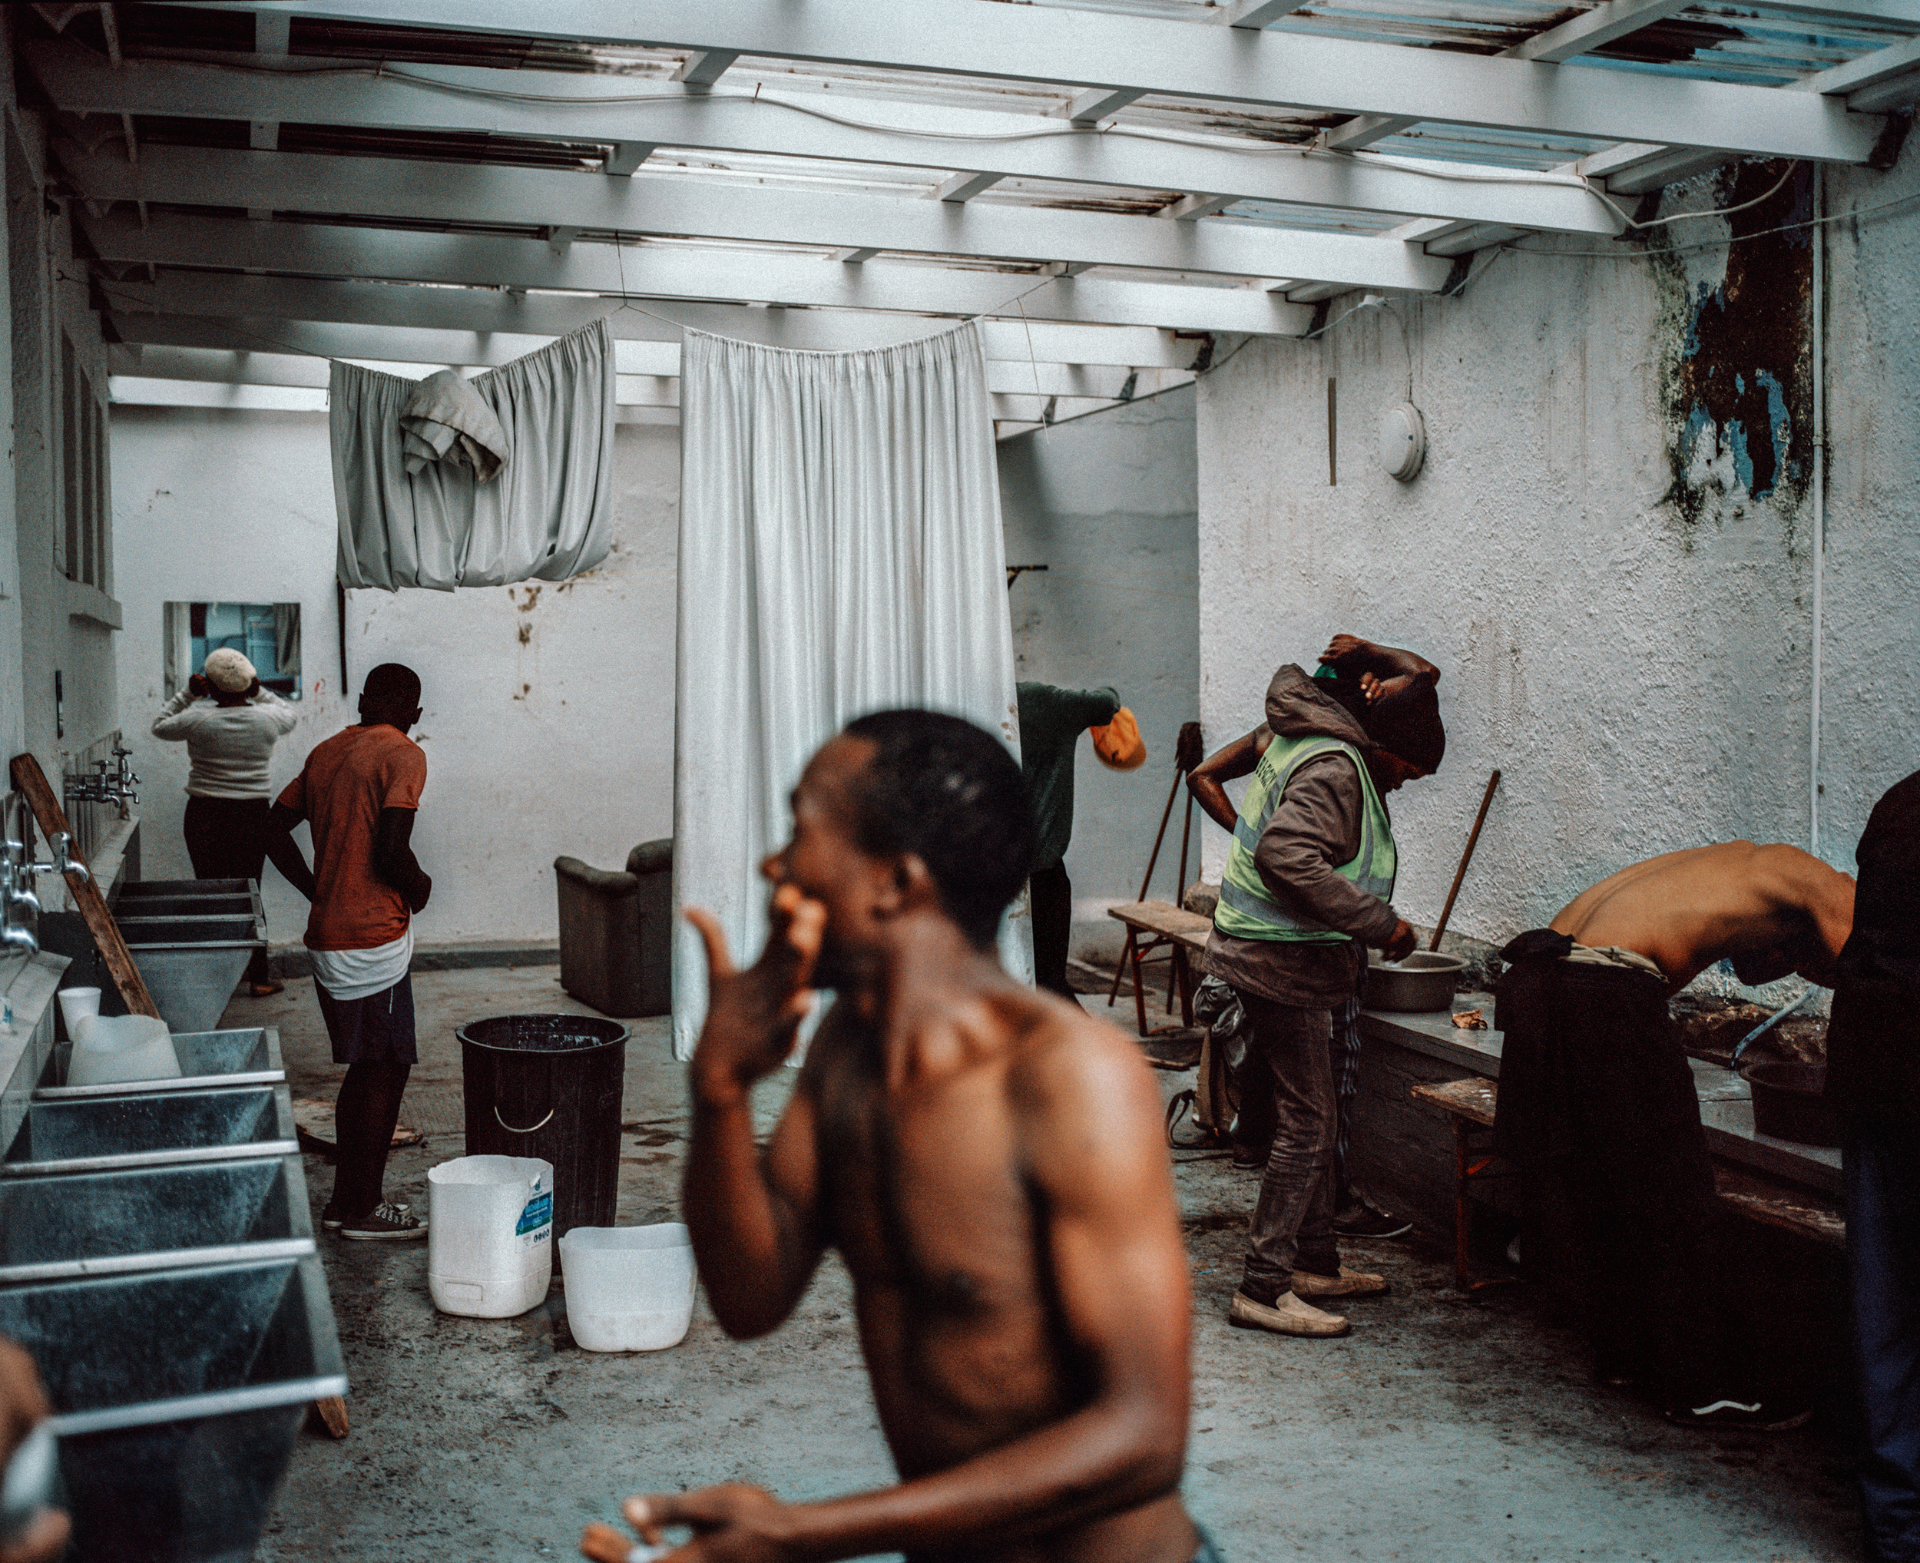 Bathing area for the homeless due to drought restrictions closing down public restrooms. The Carpenter's Shop, Cape Town, South Africa, 2018.